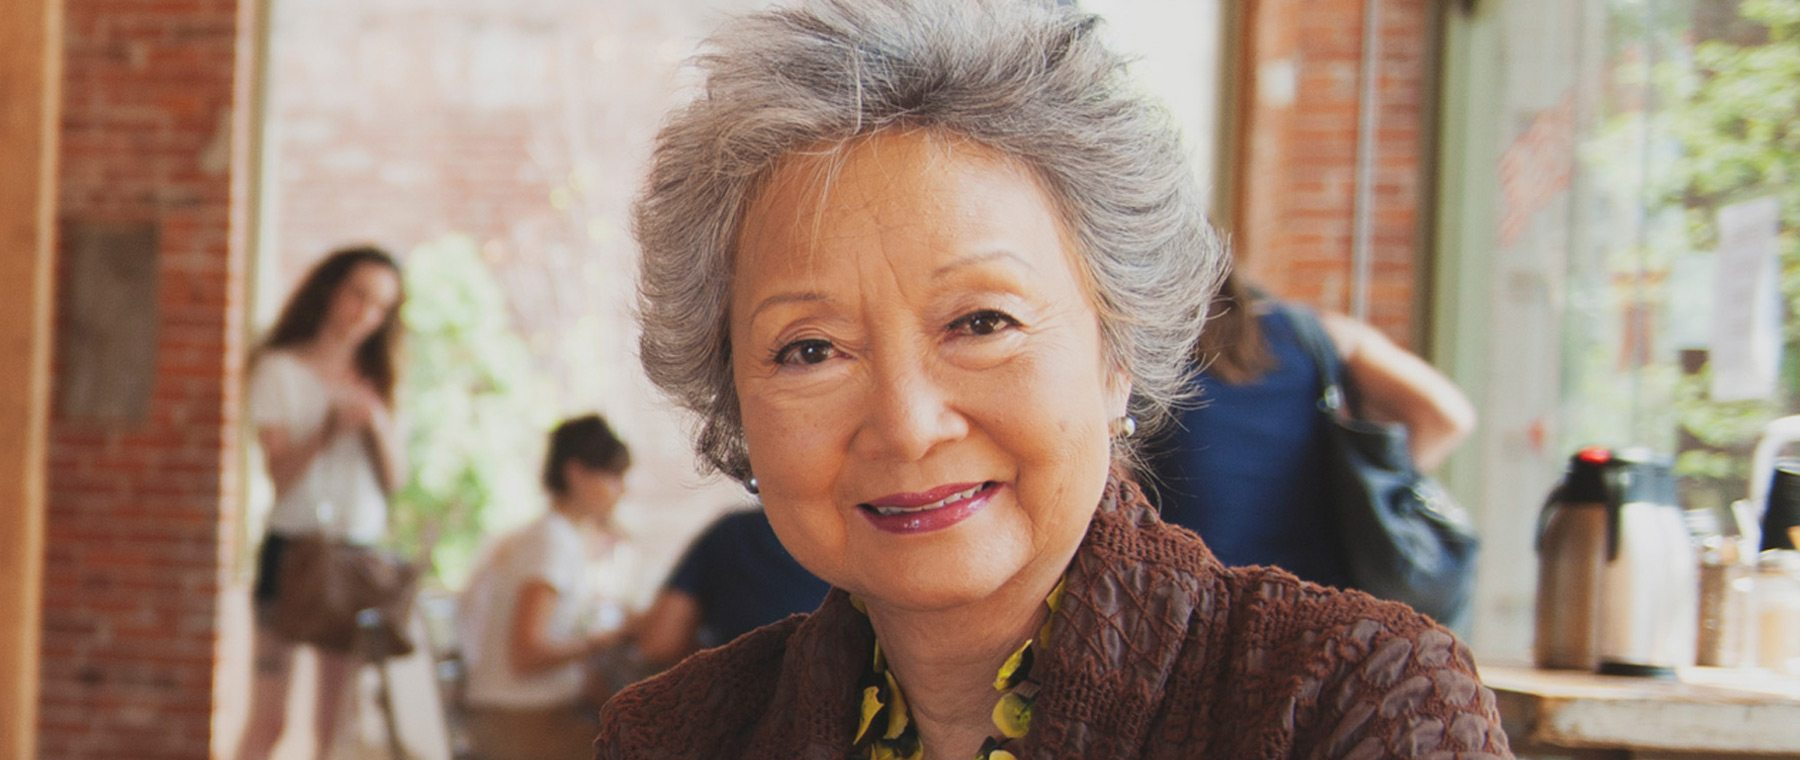 Why I love Ottawa — Former Governor General, Adrienne Clarkson's favourite places